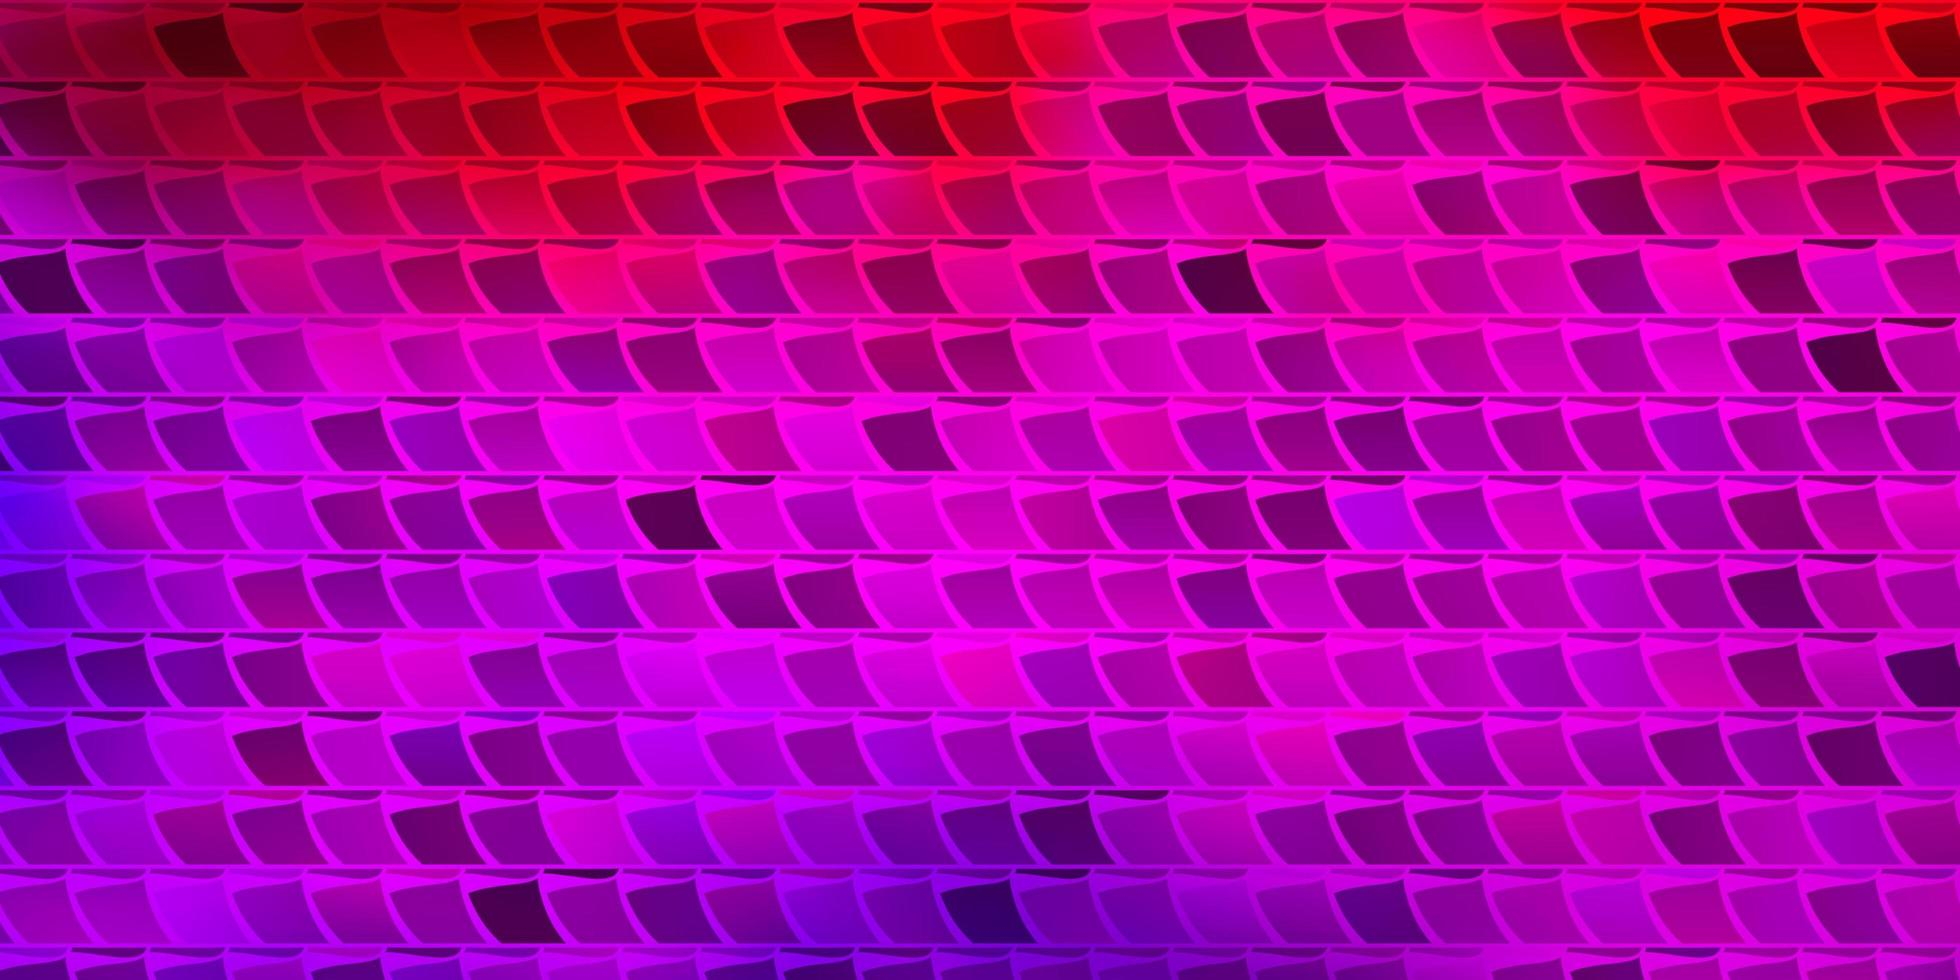 Light Pink, Red vector background with rectangles.